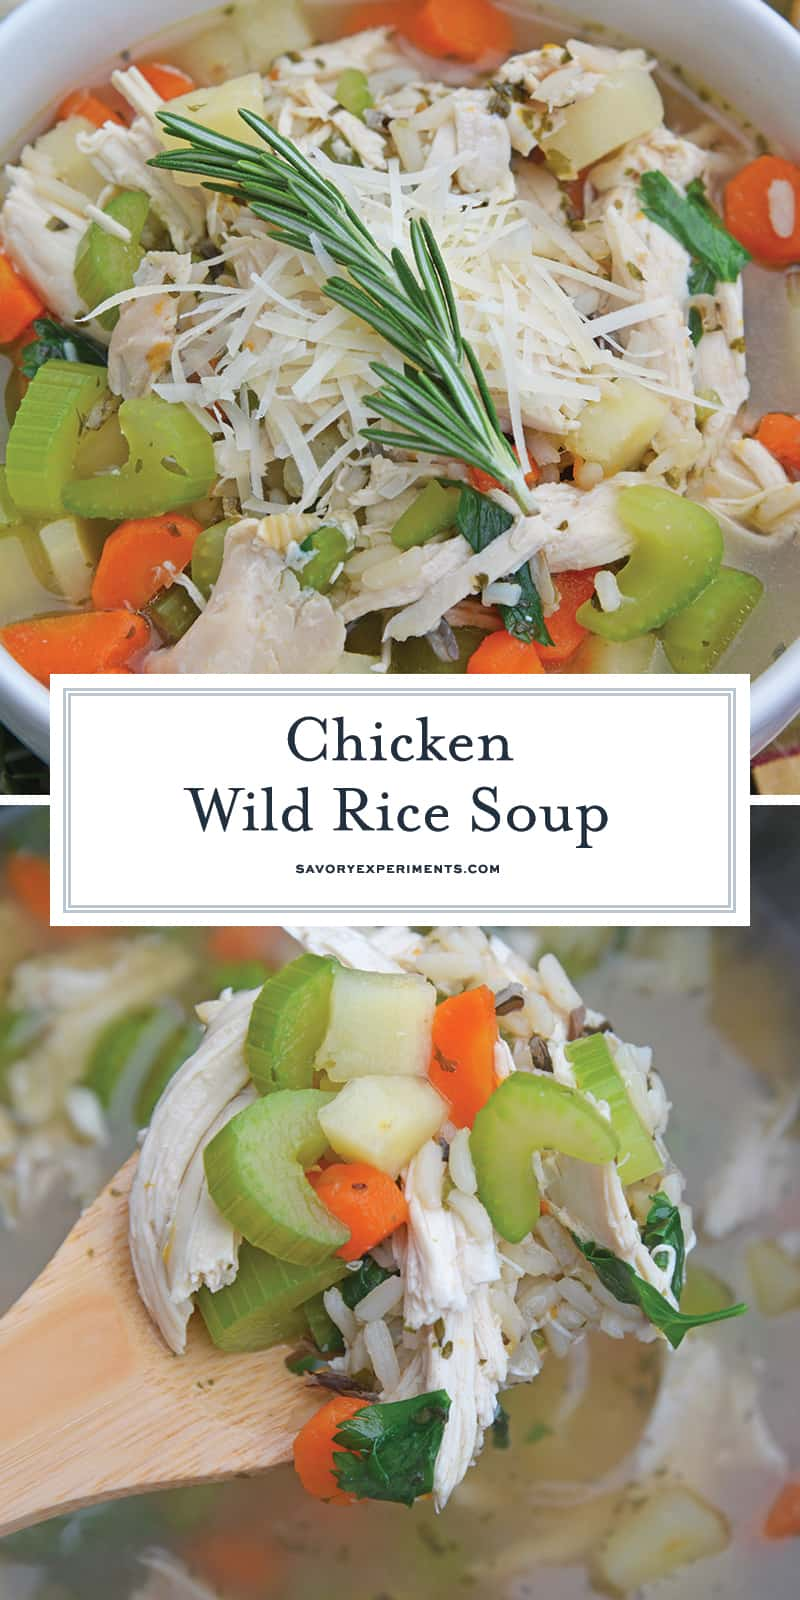 This 20-Minute Wild Rice Chicken Soup is an incrediblyeasy but flavorful 20 minute meal made with two kitchen hacks that will make your life so much easier! It'll become a winter soup staple in your home! #chickensoup #chickenwildricesoup www.savoryexperiments.com